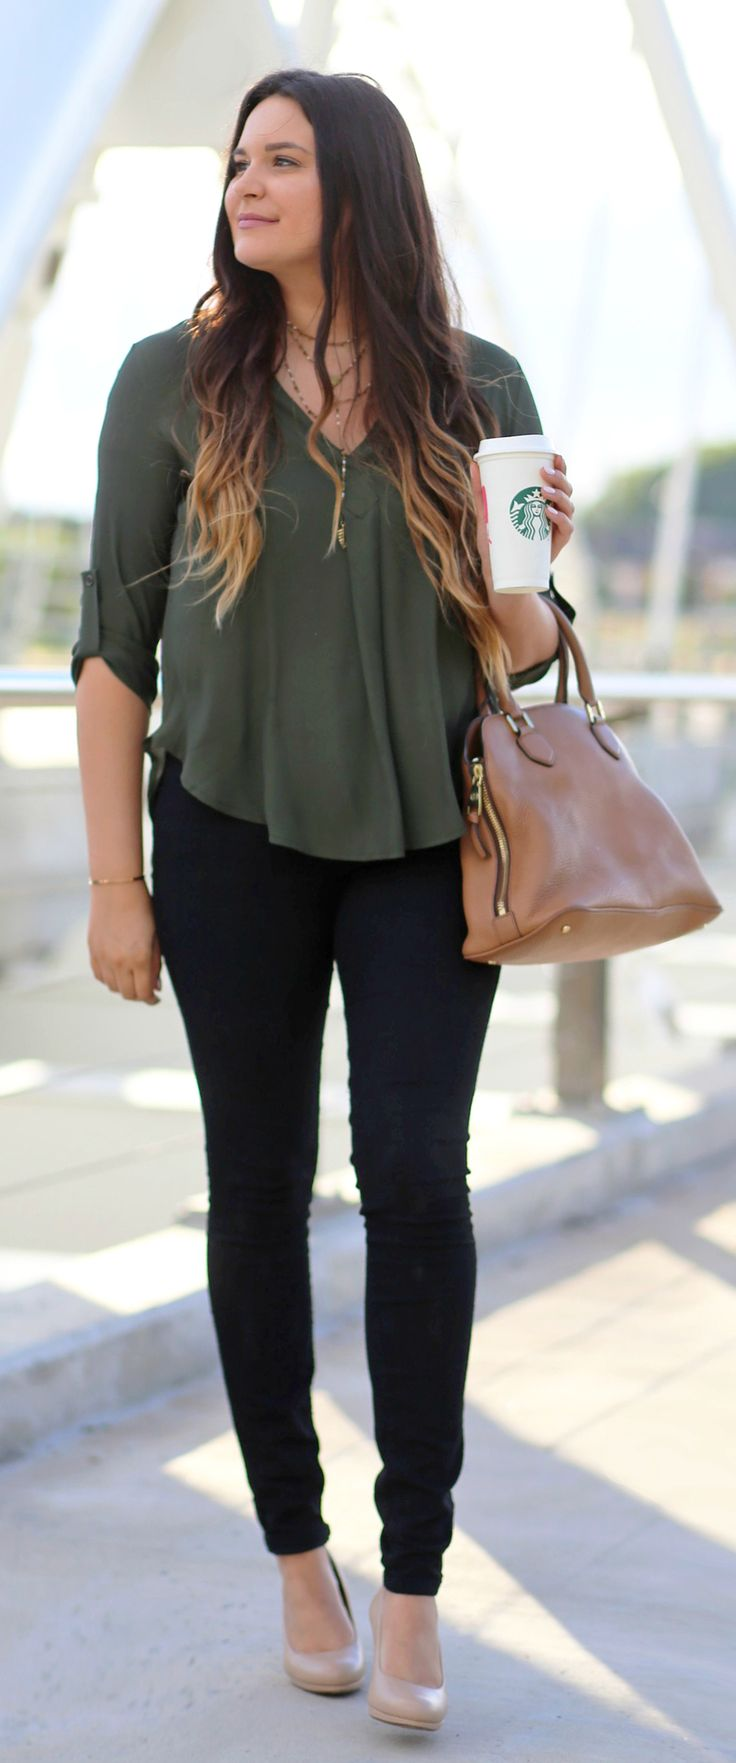 1000+ images about comfortable work outfits on Pinterest ...